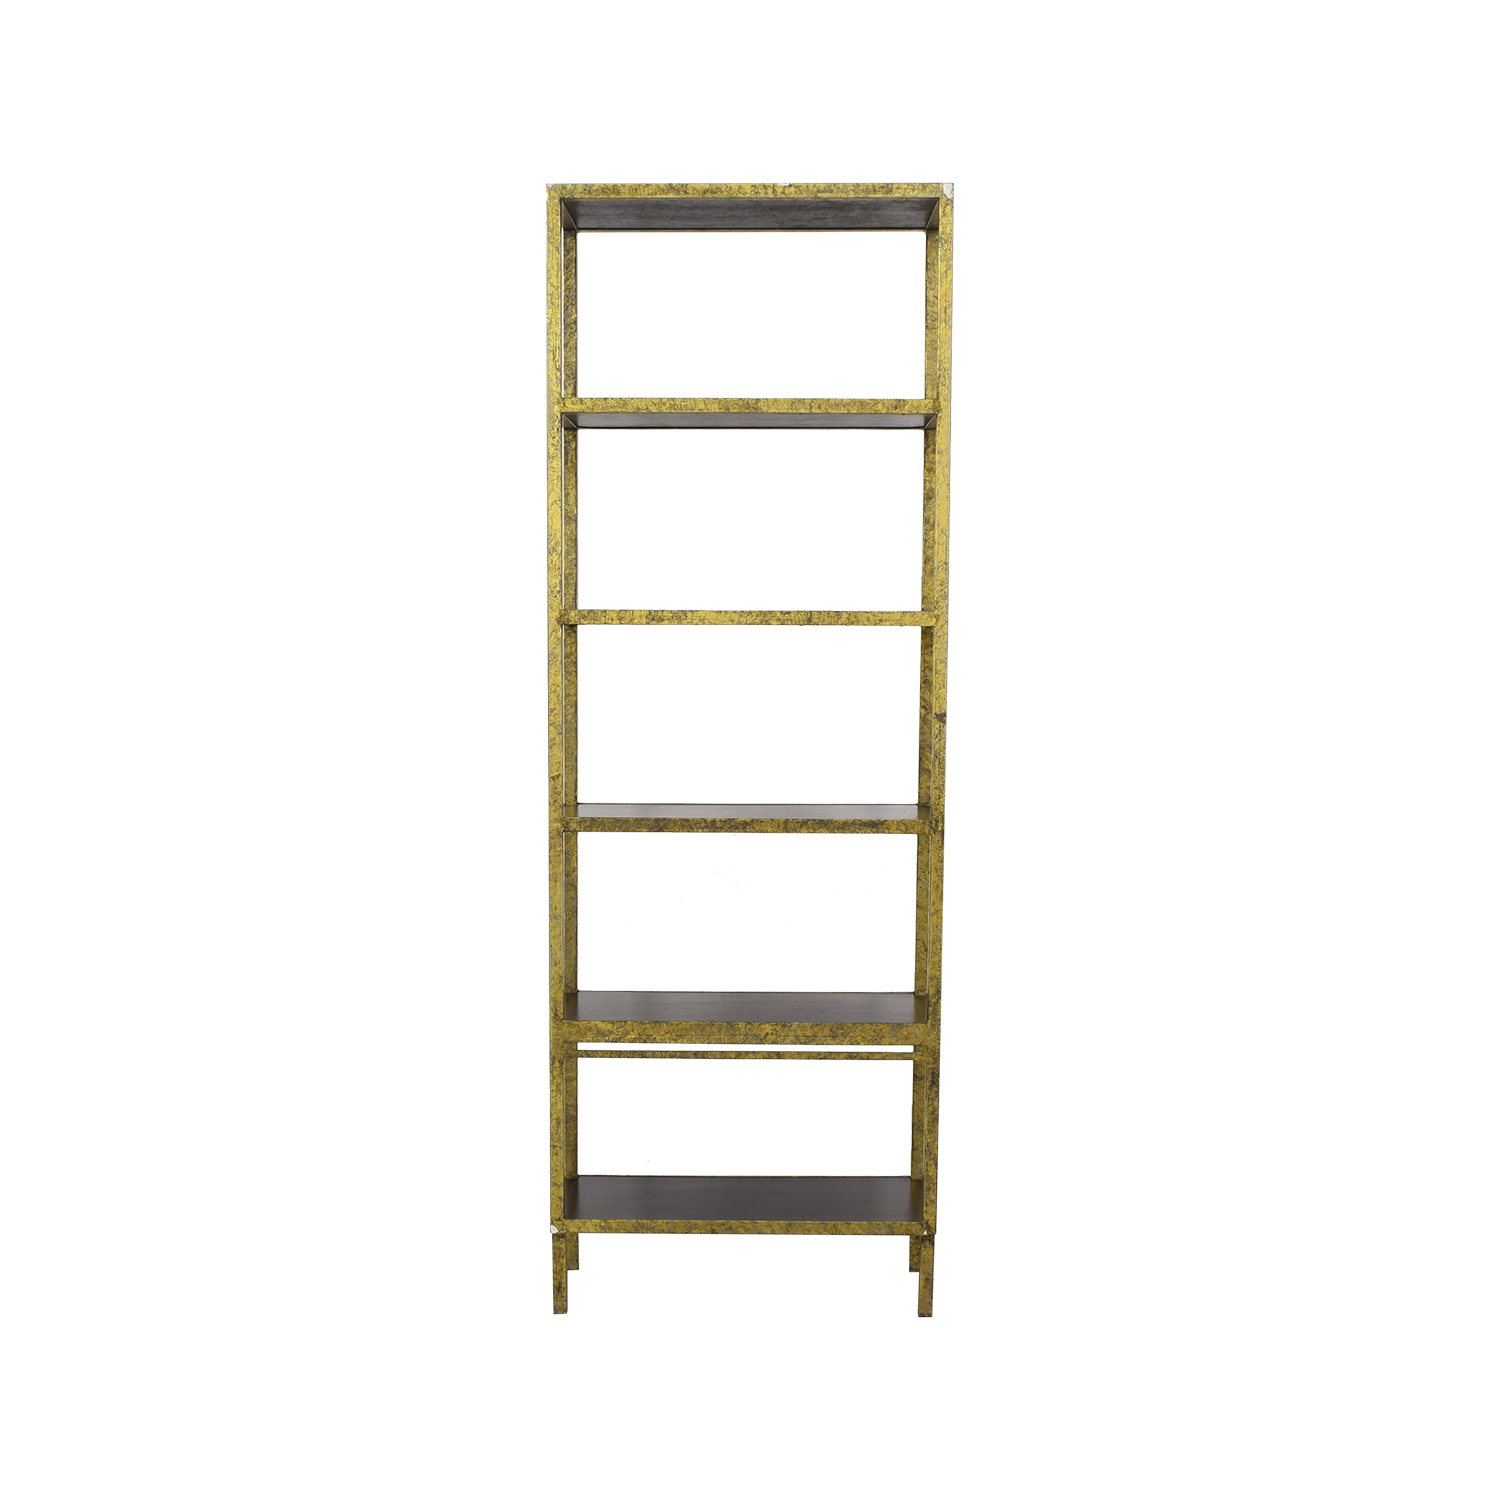 Arteriors Single Iron Shelving sale